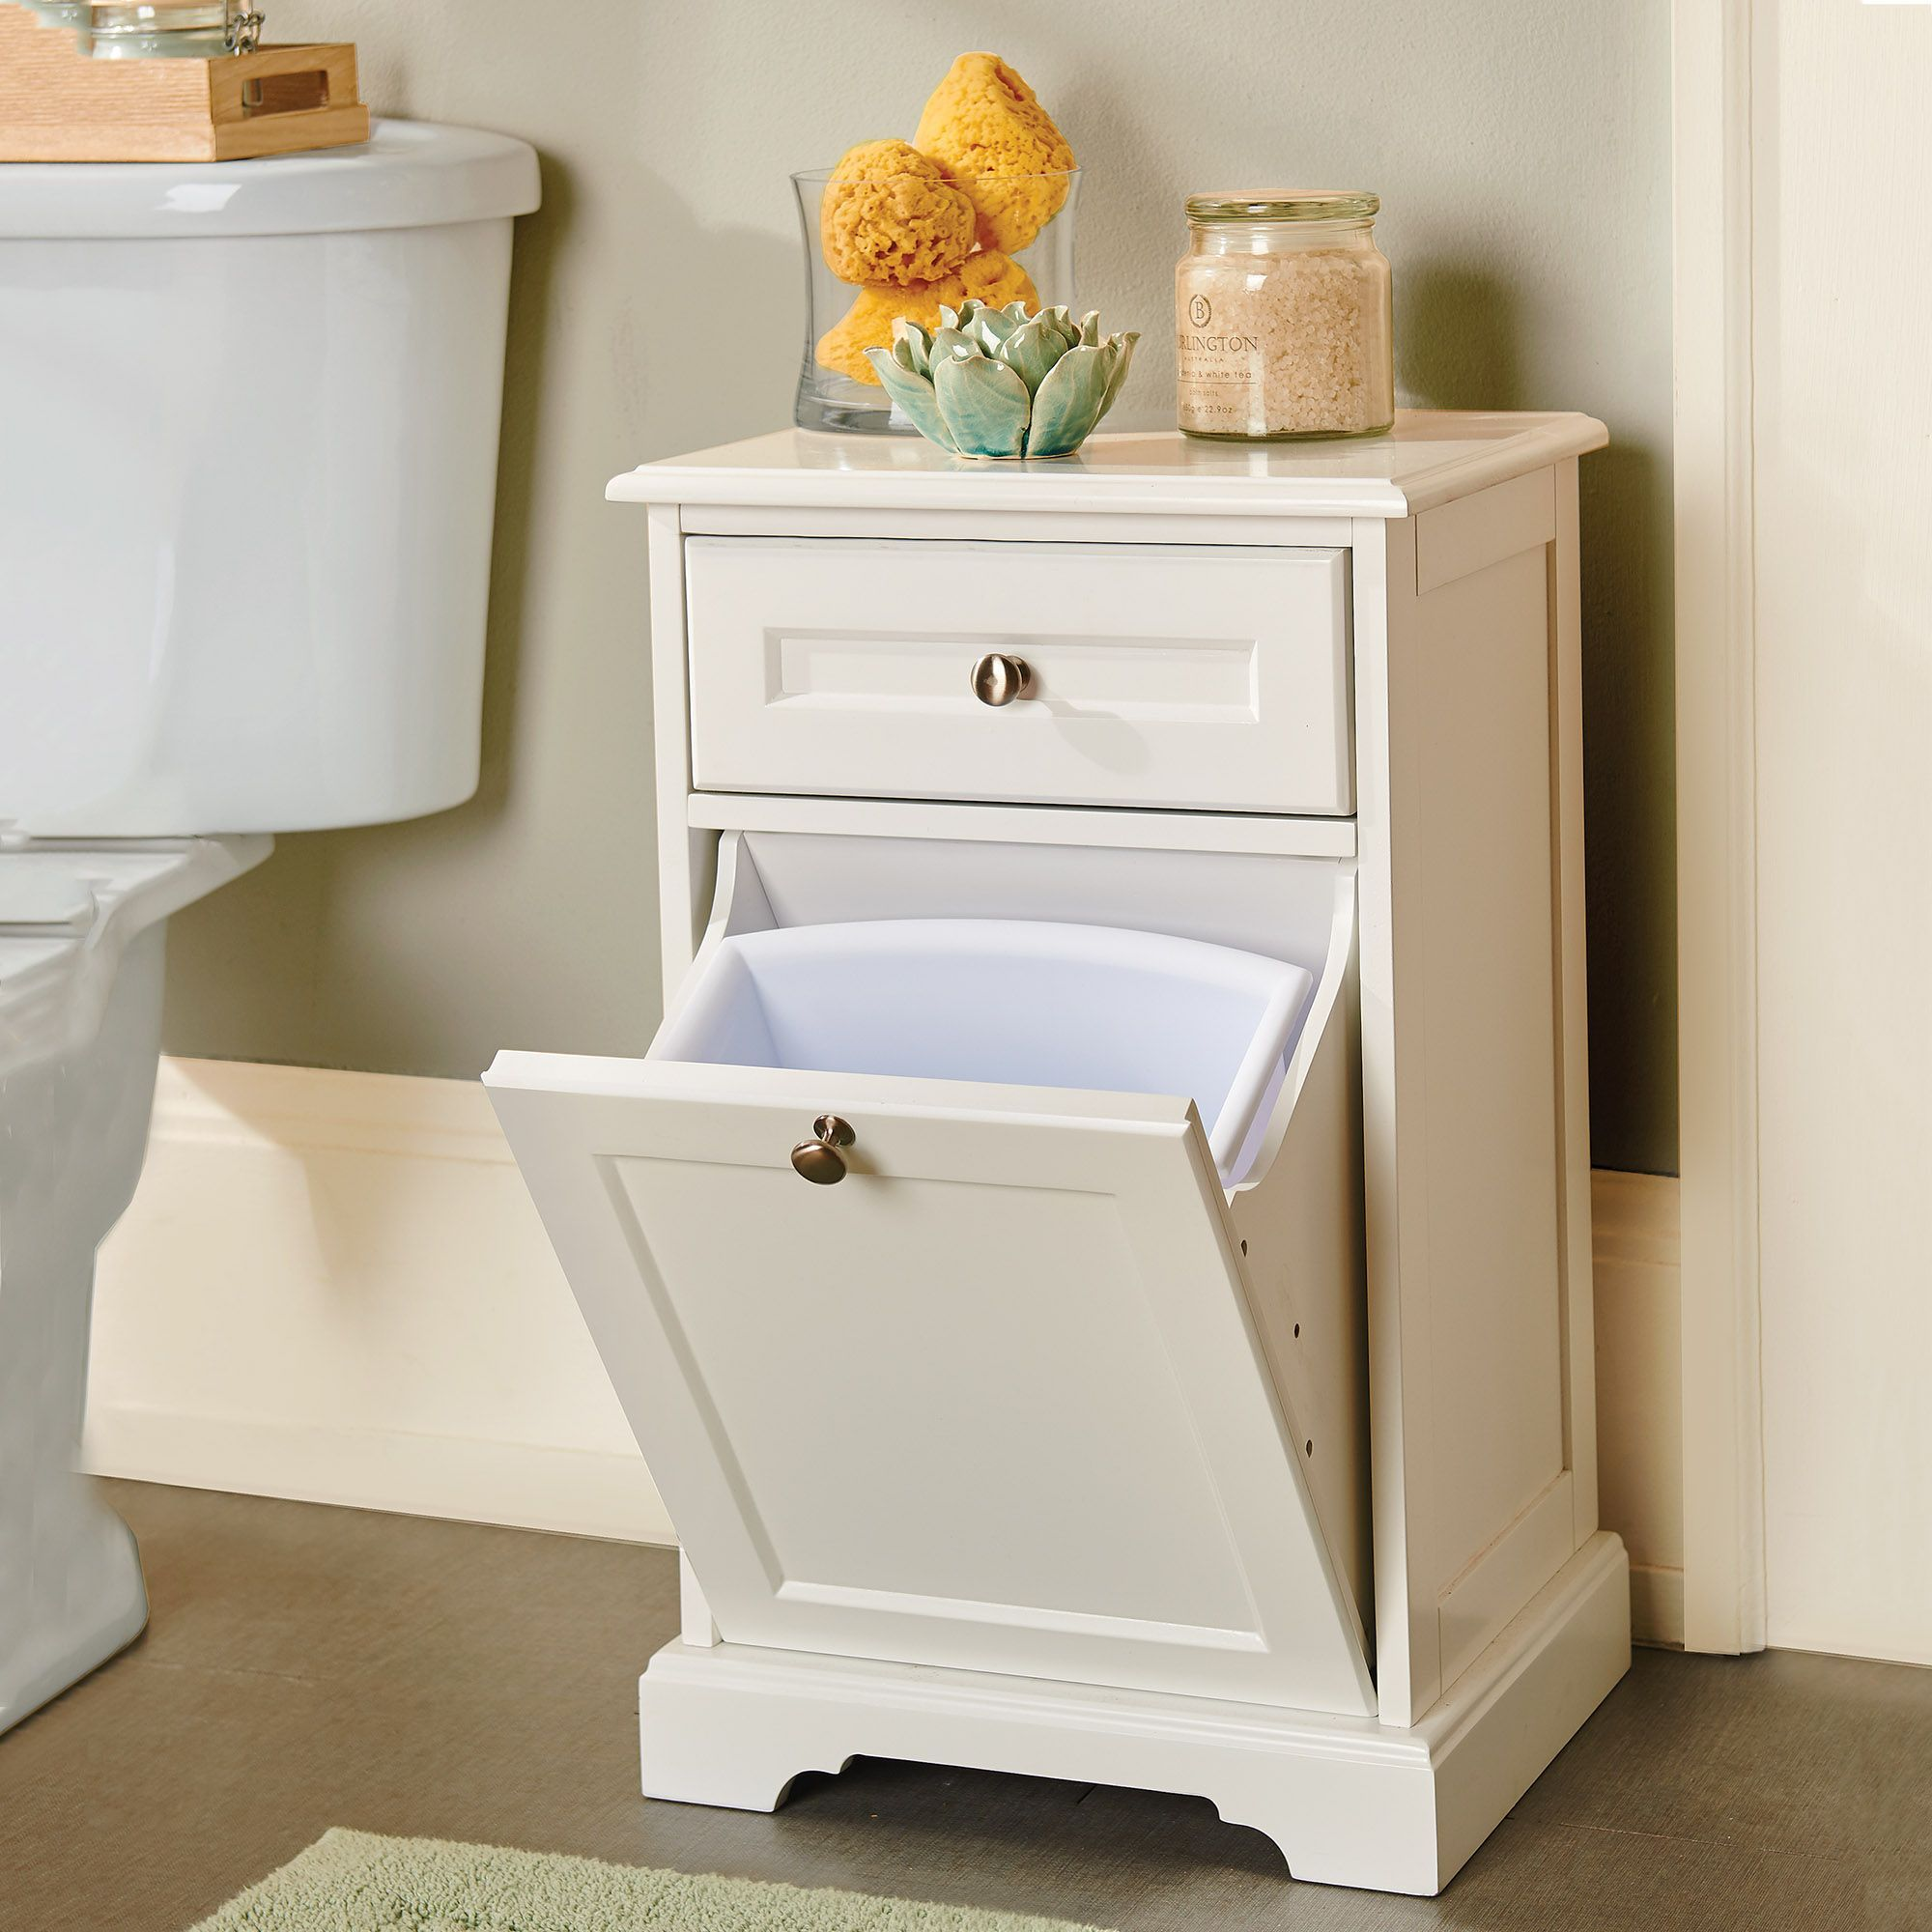 Weatherby Trash Can Cabinet With Drawer Trash Can Cabinet Bathroom Trash Can Storage Cabinet With Drawers